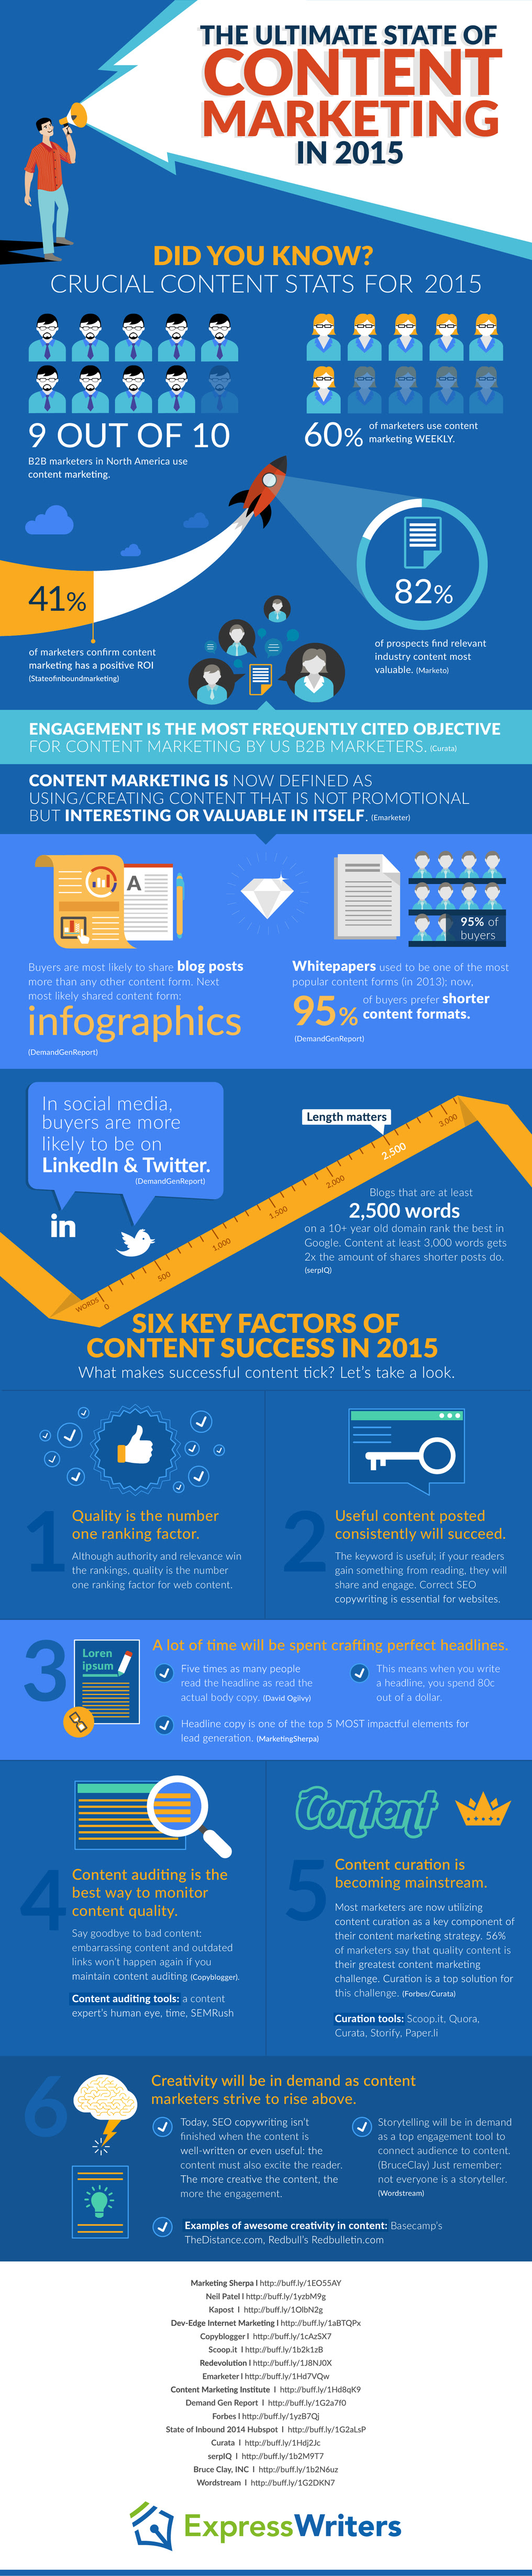 The State Of Content Marketing 2015: Trends And Best Practices - #infographic